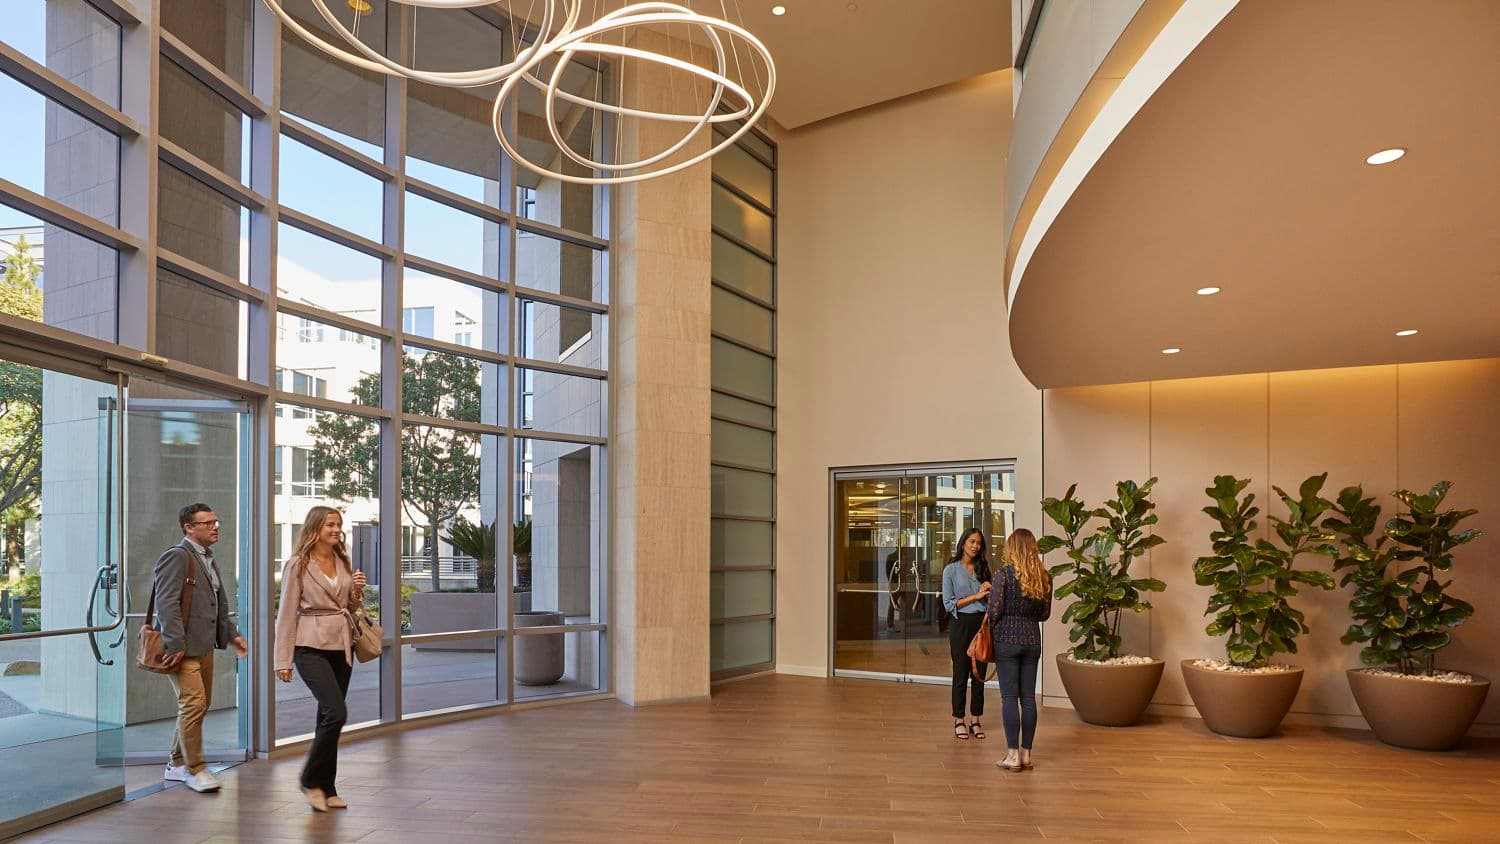 Interior view of lobby at La Jolla Reserve in San Diego, CA.